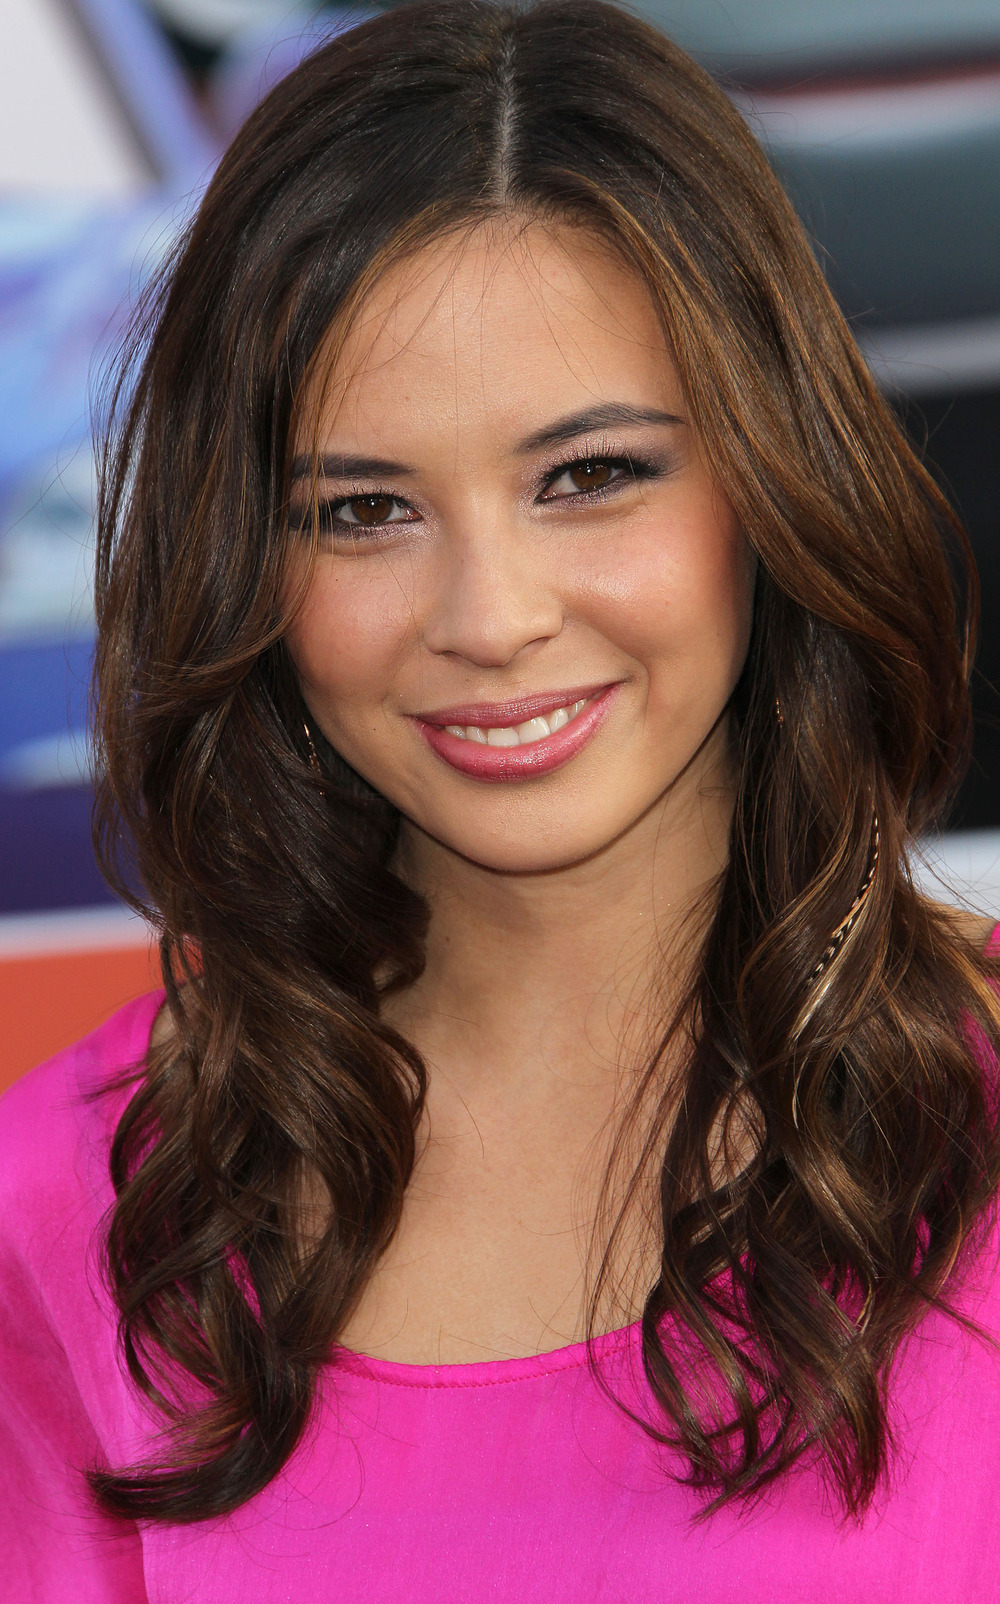 Malese Jow's New CW Show Star-Crossed Gets Premiere Date!